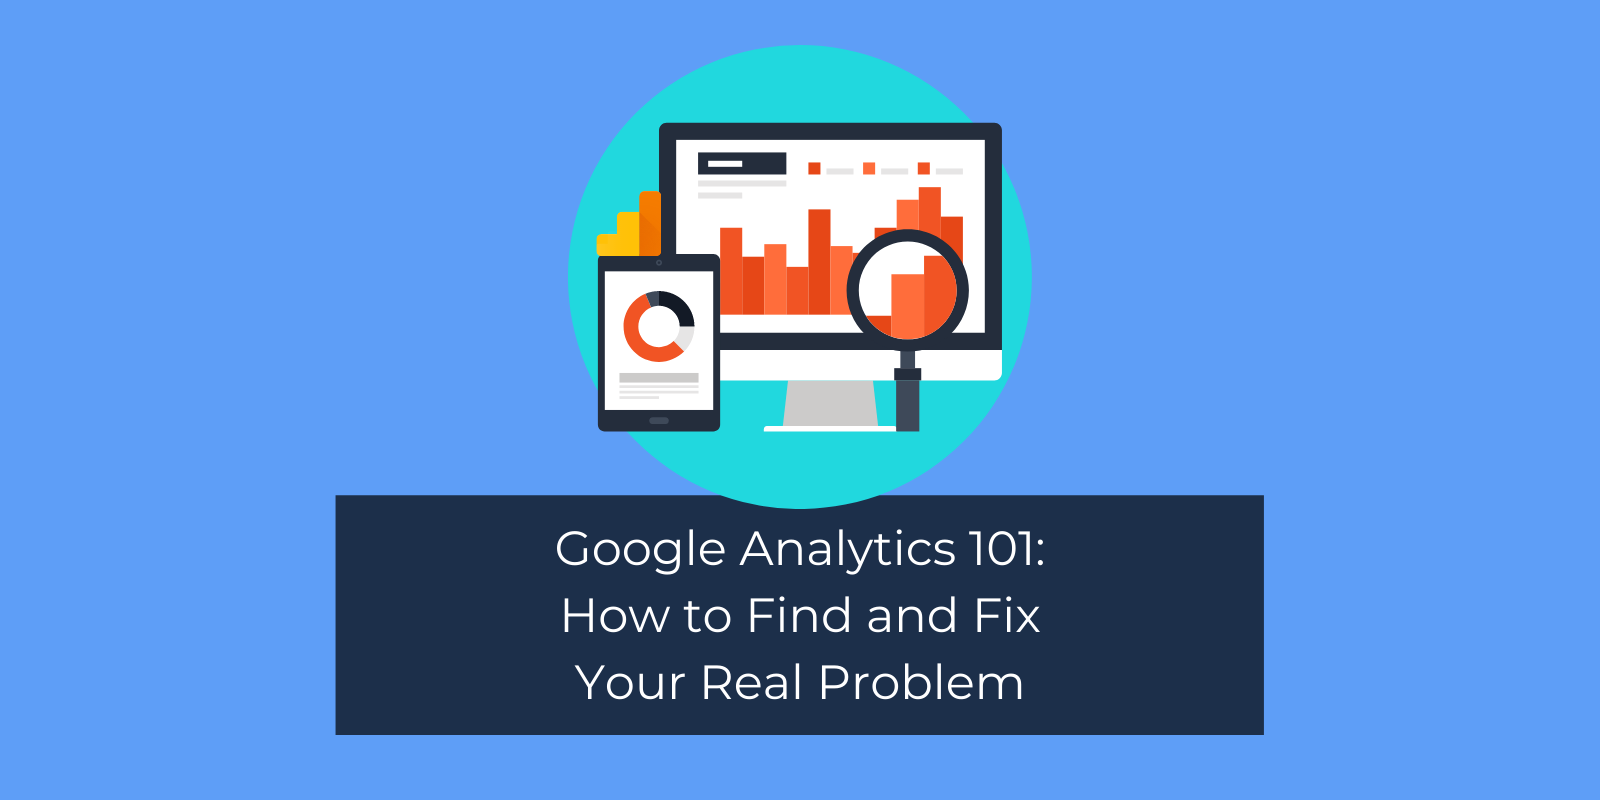 Google Analytics 101: How to Find and Fix Your Real Problem